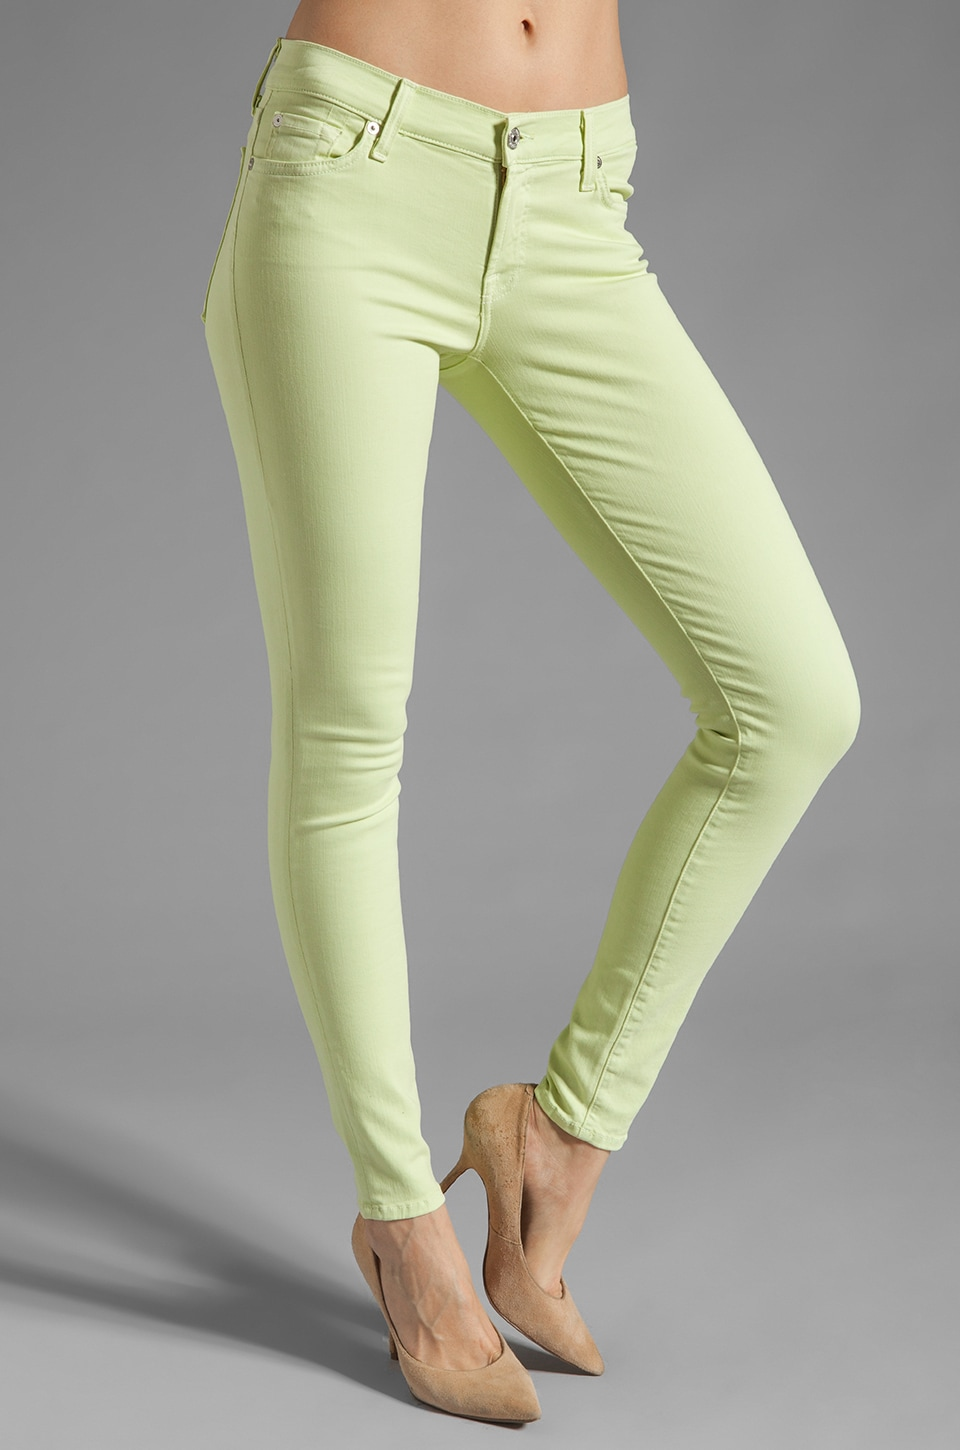 7 For All Mankind The Skinny Slim Illusion in Celery